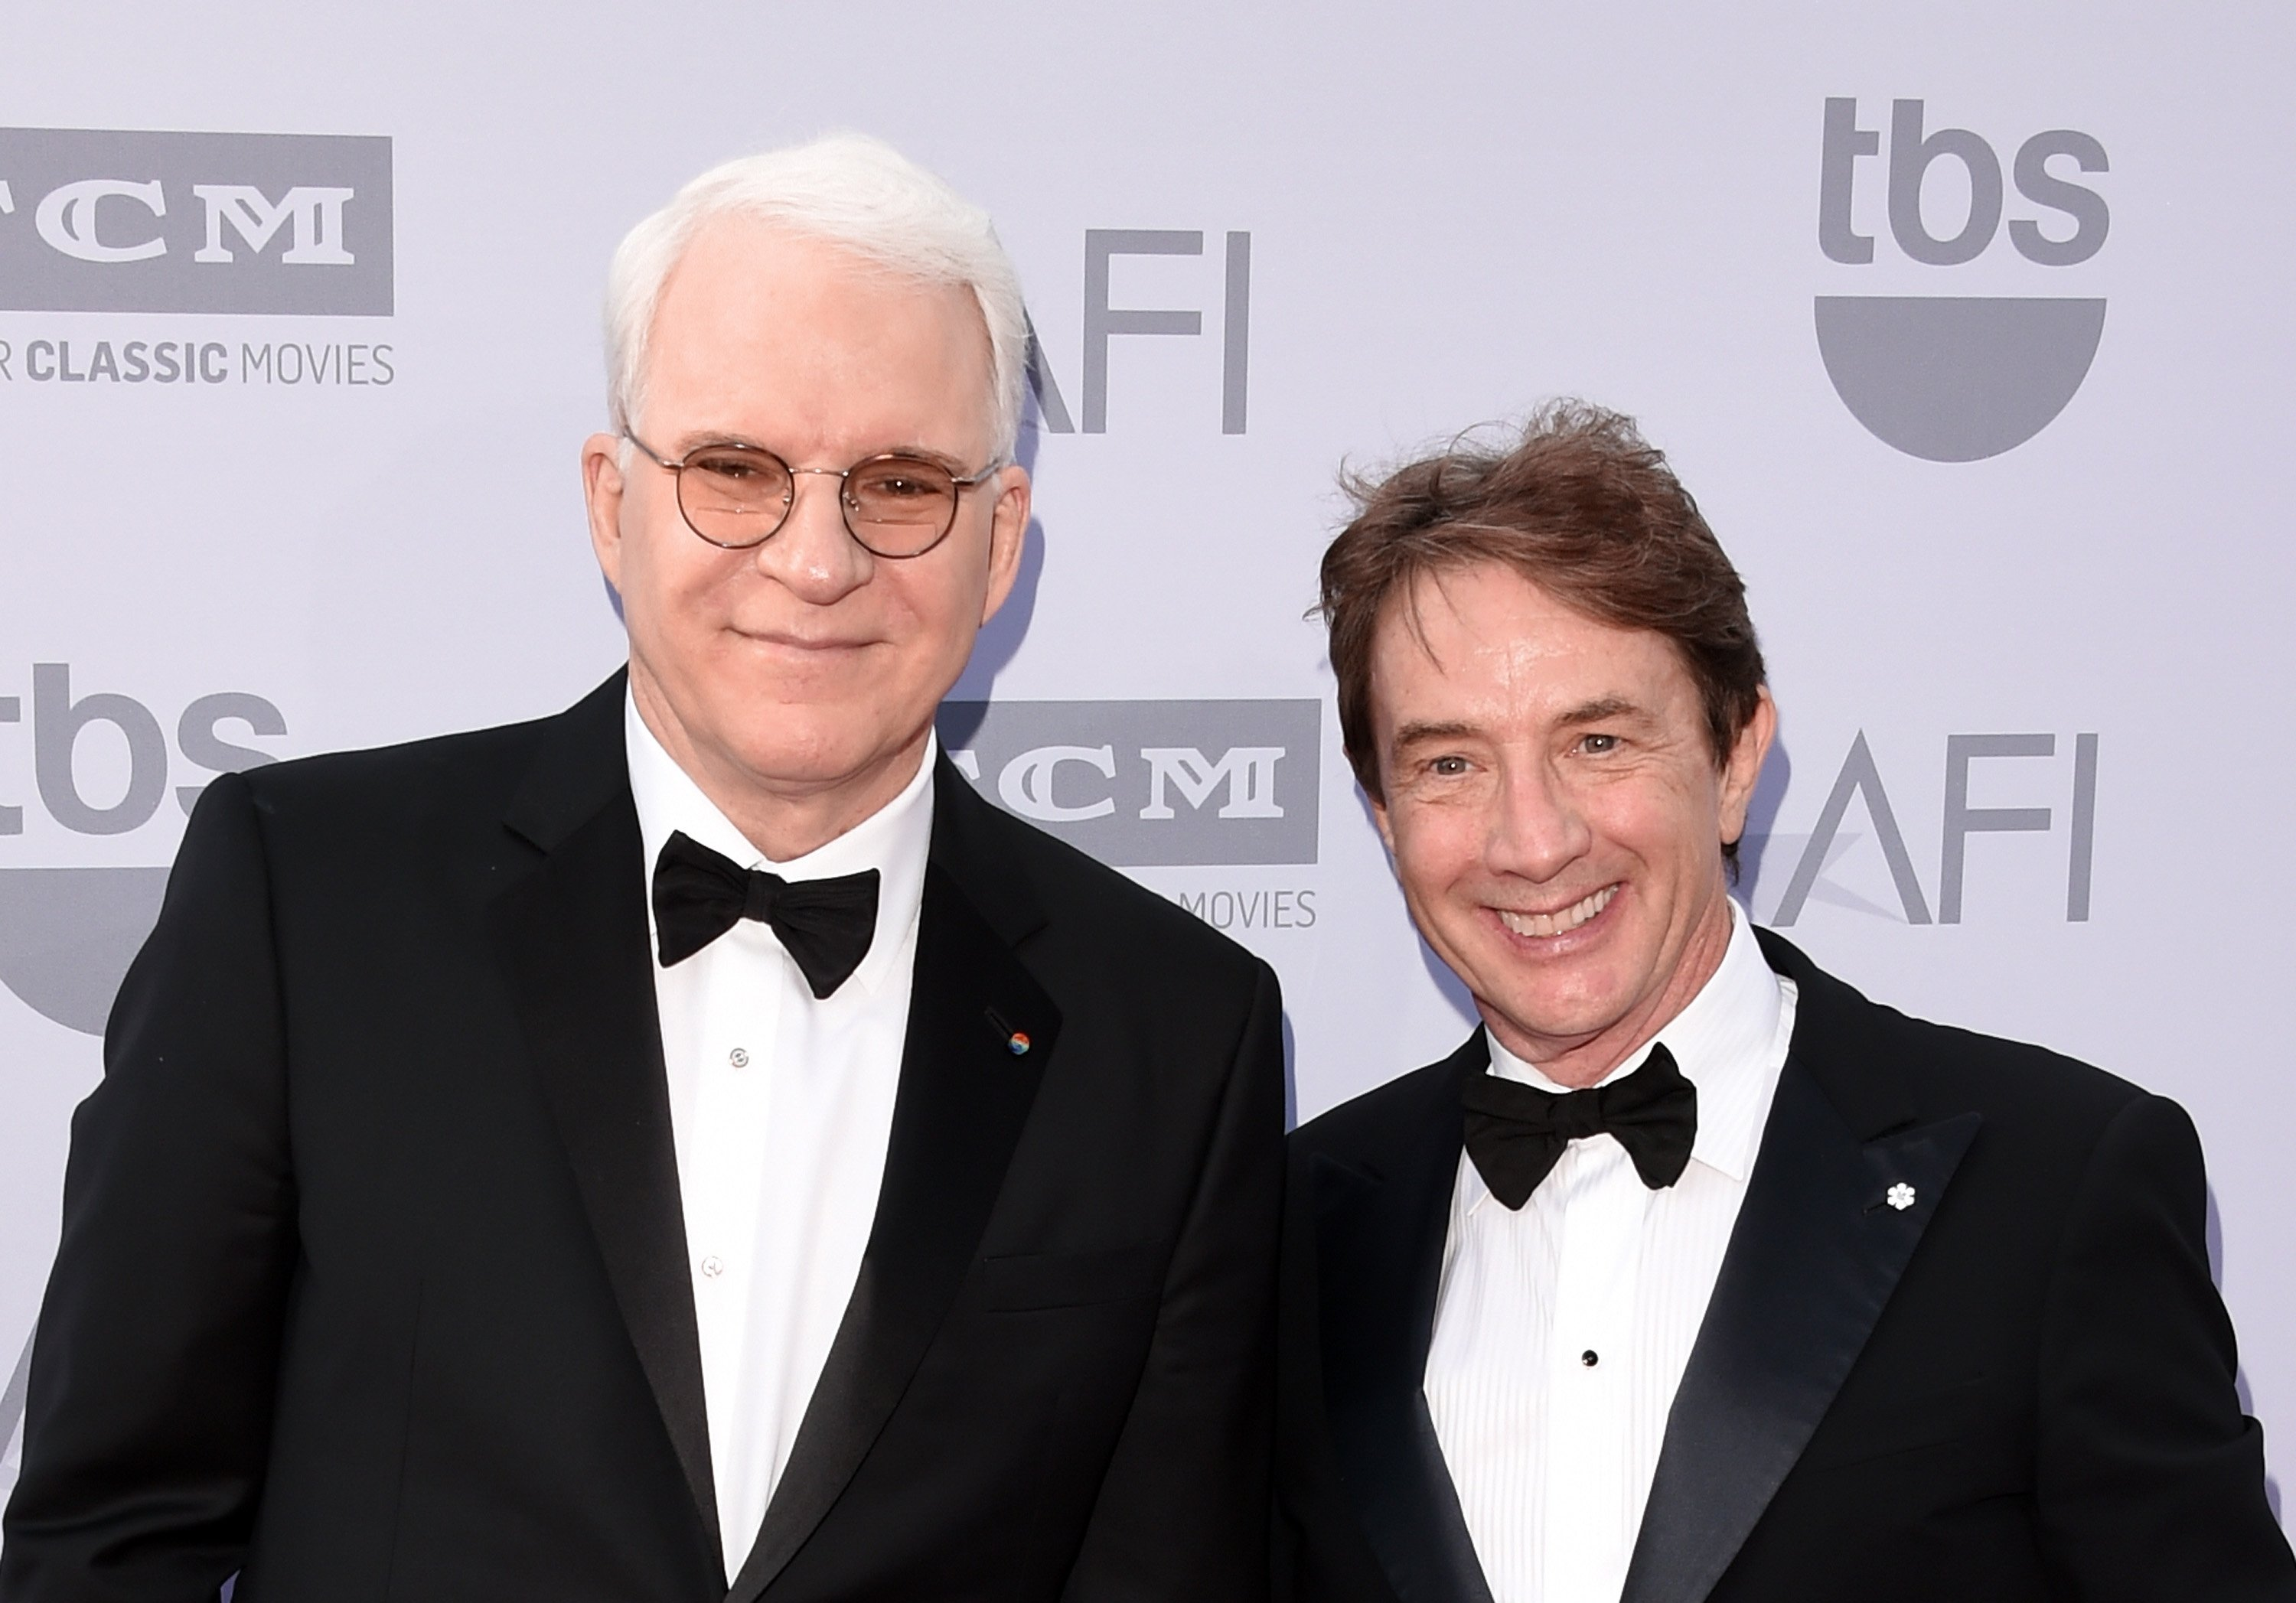 Honoree Steve Martin (L) and actor Martin Short attend the 2015 AFI Life Achievement Award Gala Tribute Honoring Steve Martin at the Dolby Theatre on June 4, 2015 in Hollywood, California.| Source: Getty Images